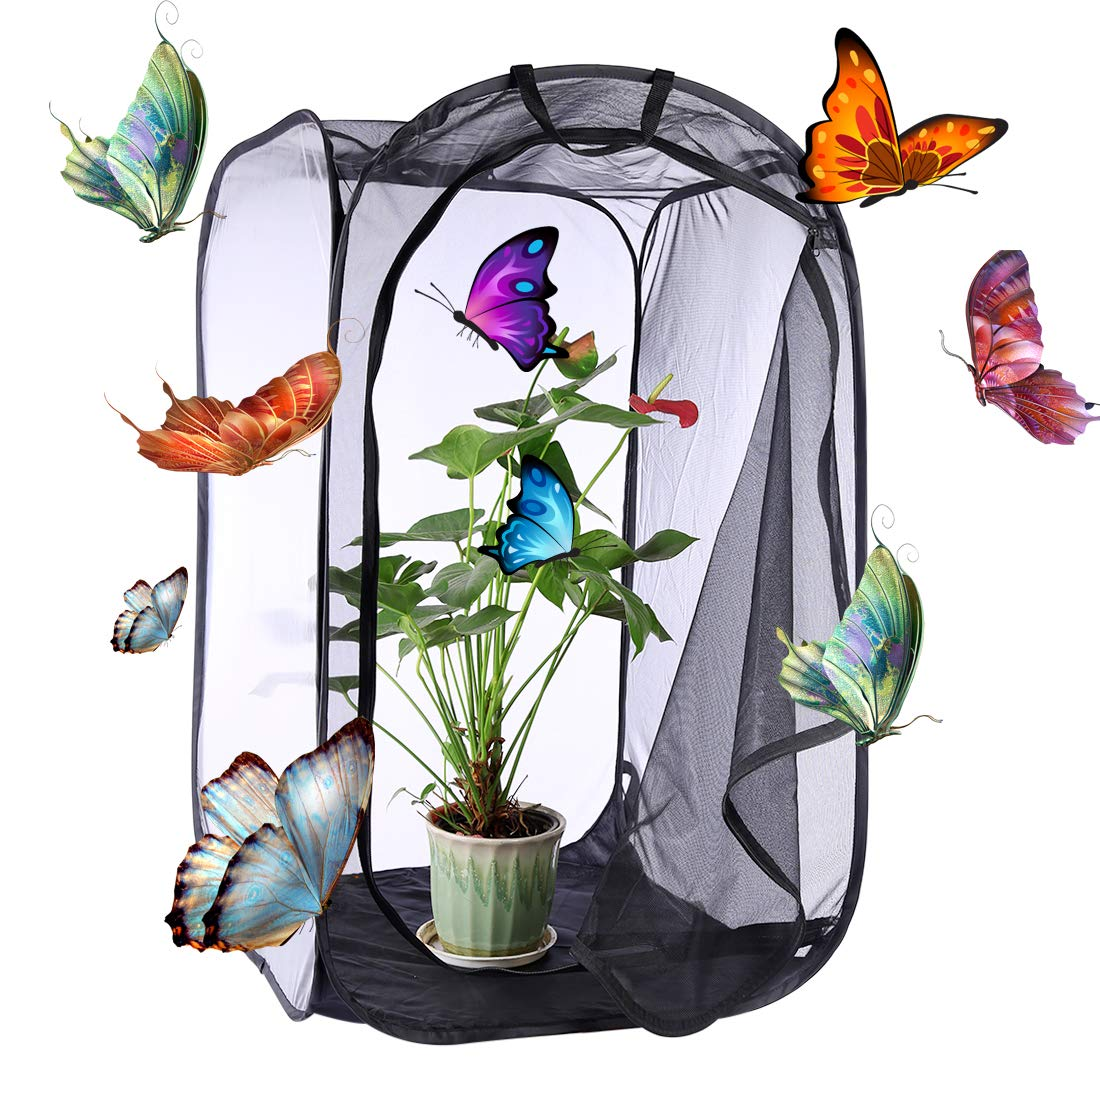 Yamix Insect and Butterfly Habitat Cage Terrarium Butterfly House Collapsible Pop-up 35.4'' Tall (Black)